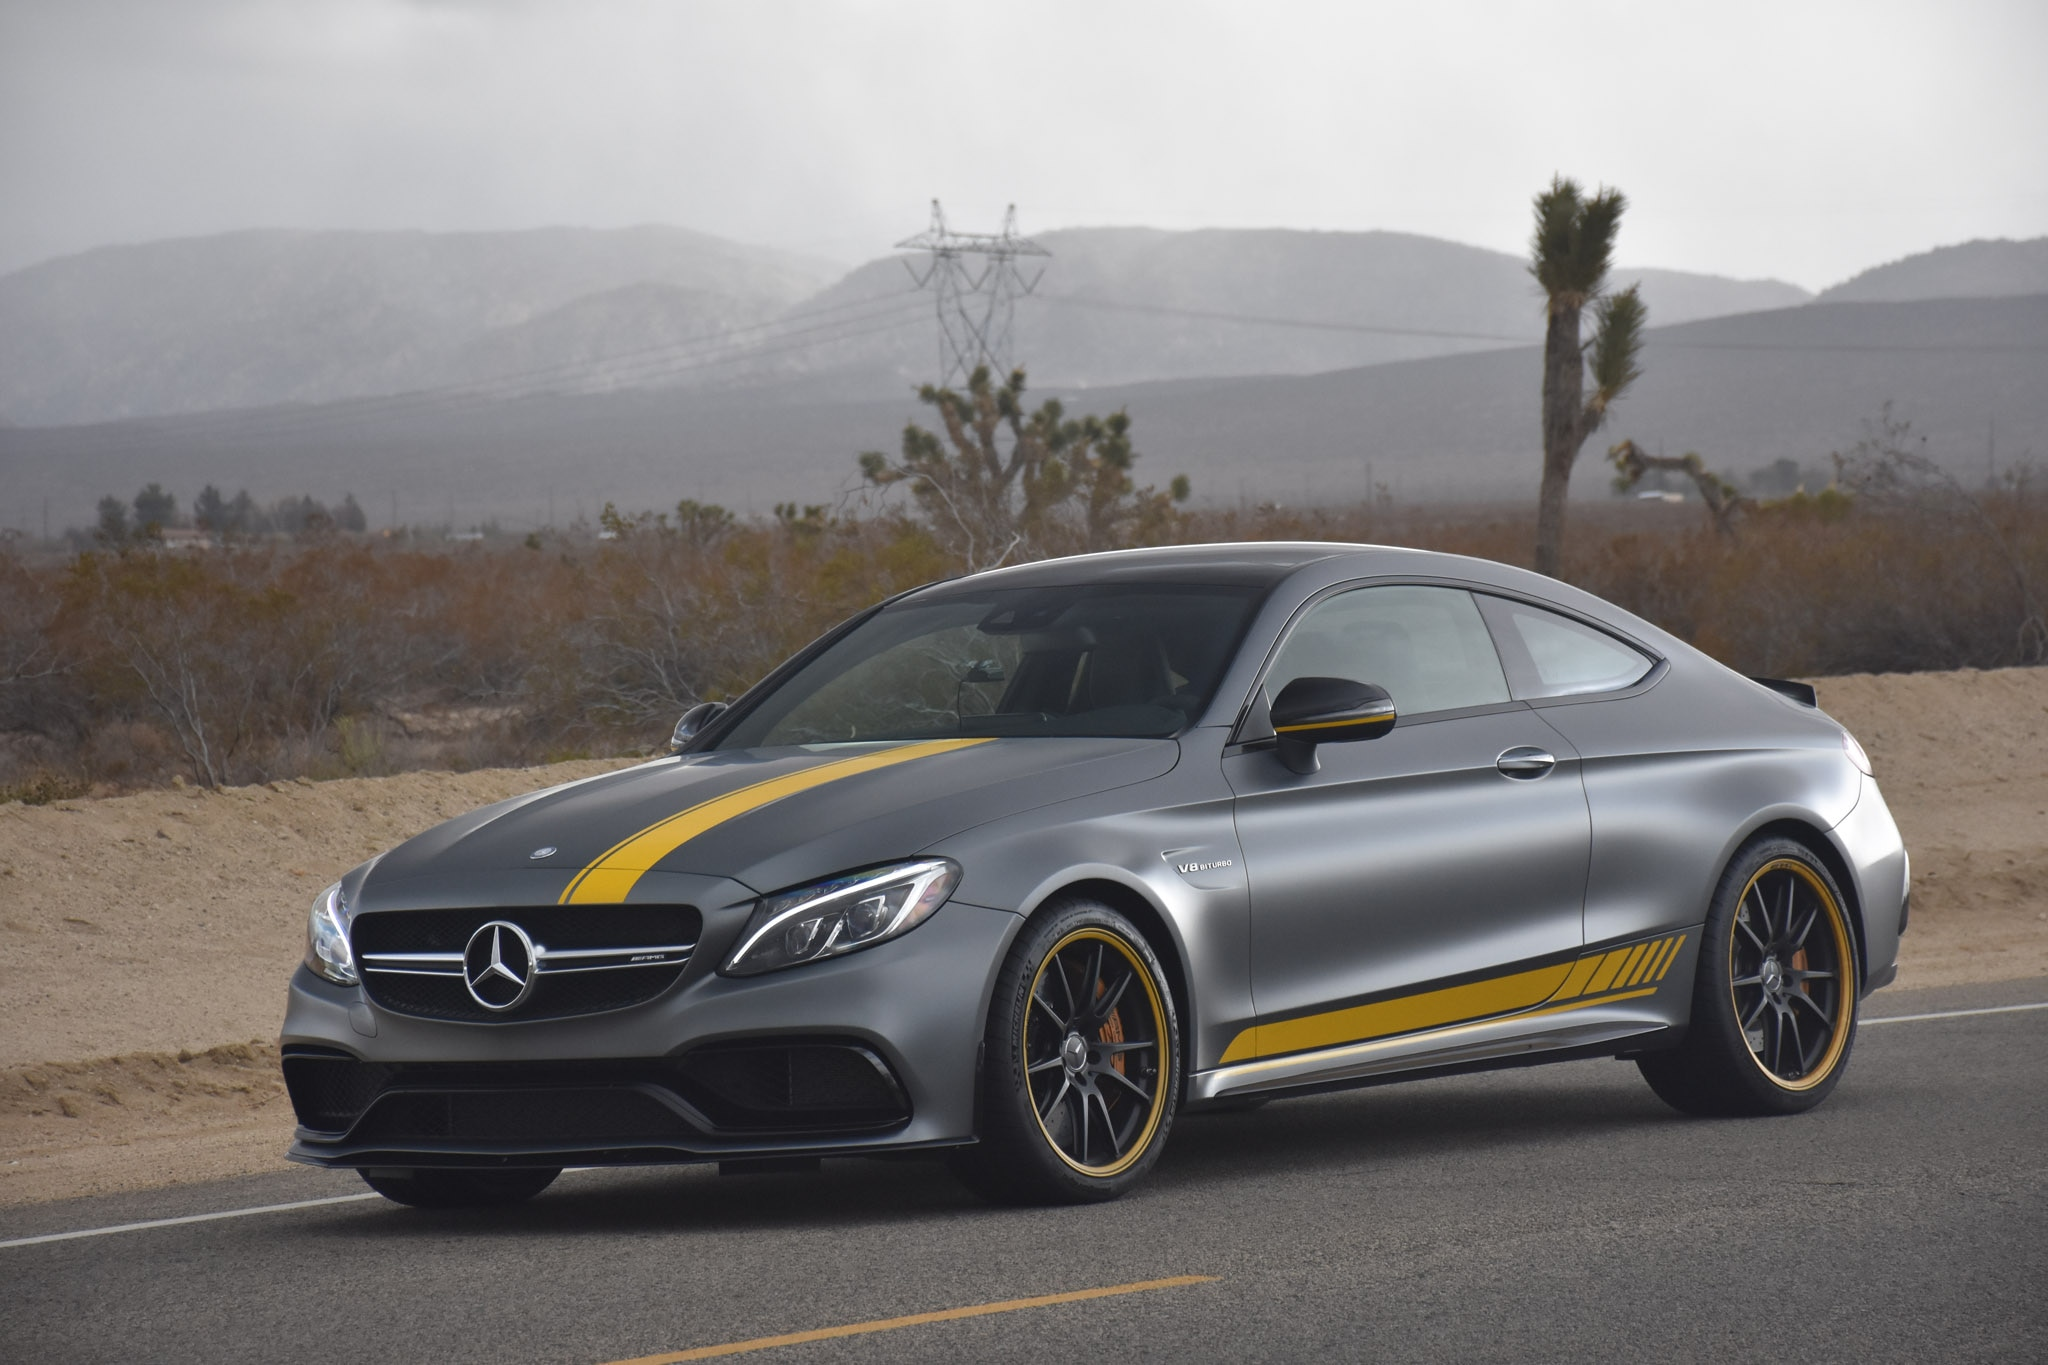 This Supple, Slightly Irresponsible Character Makes It Easy To Lose  Perspective Of Just How Fast Youu0027re Going U2014 A Problem Compounded By The C63  AMG Su0027 Faint ...